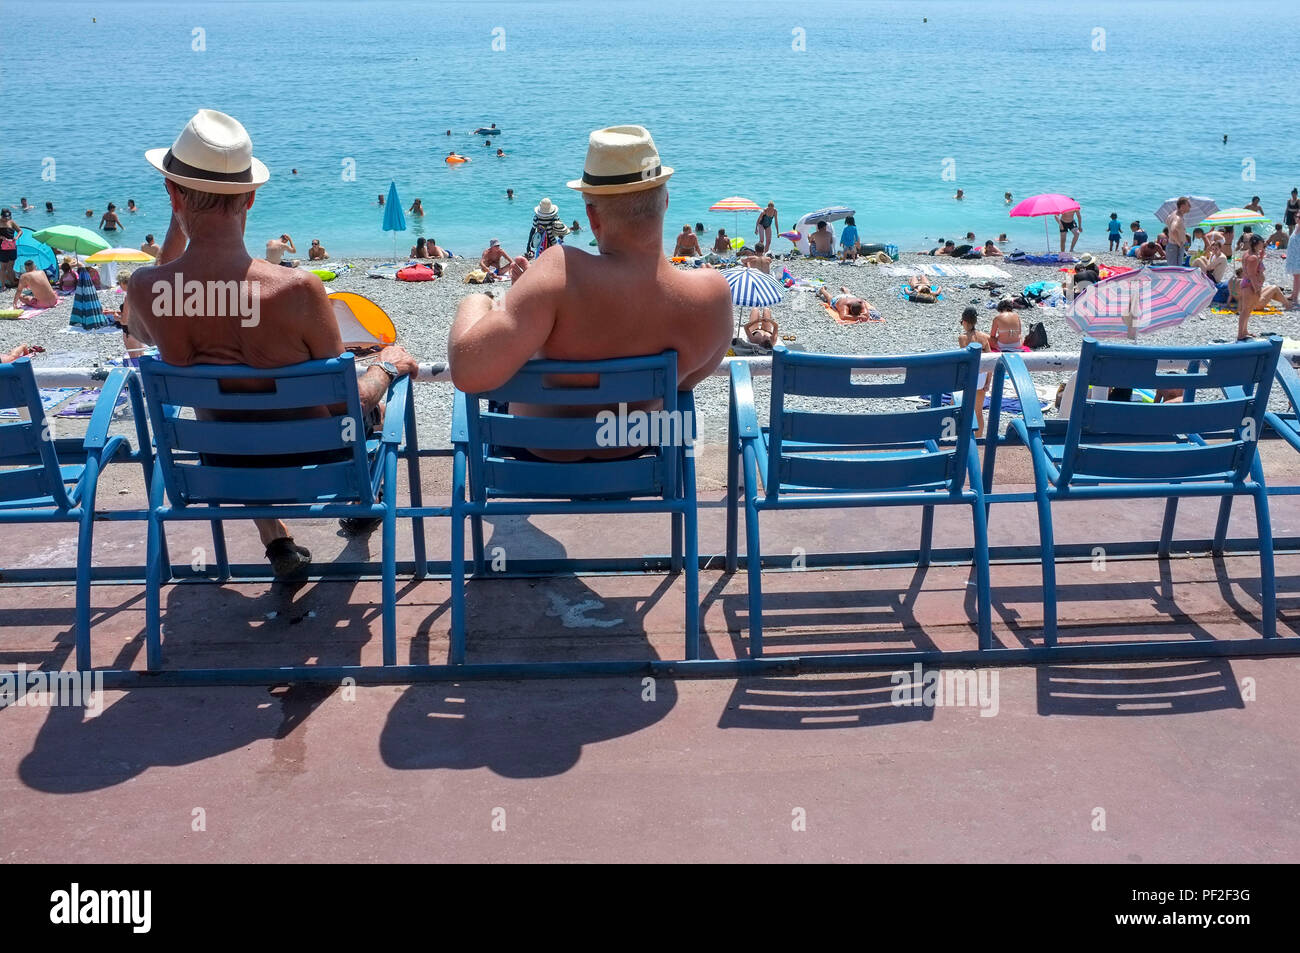 two-men-sit-on-the-blue-chairs-on-the-pr